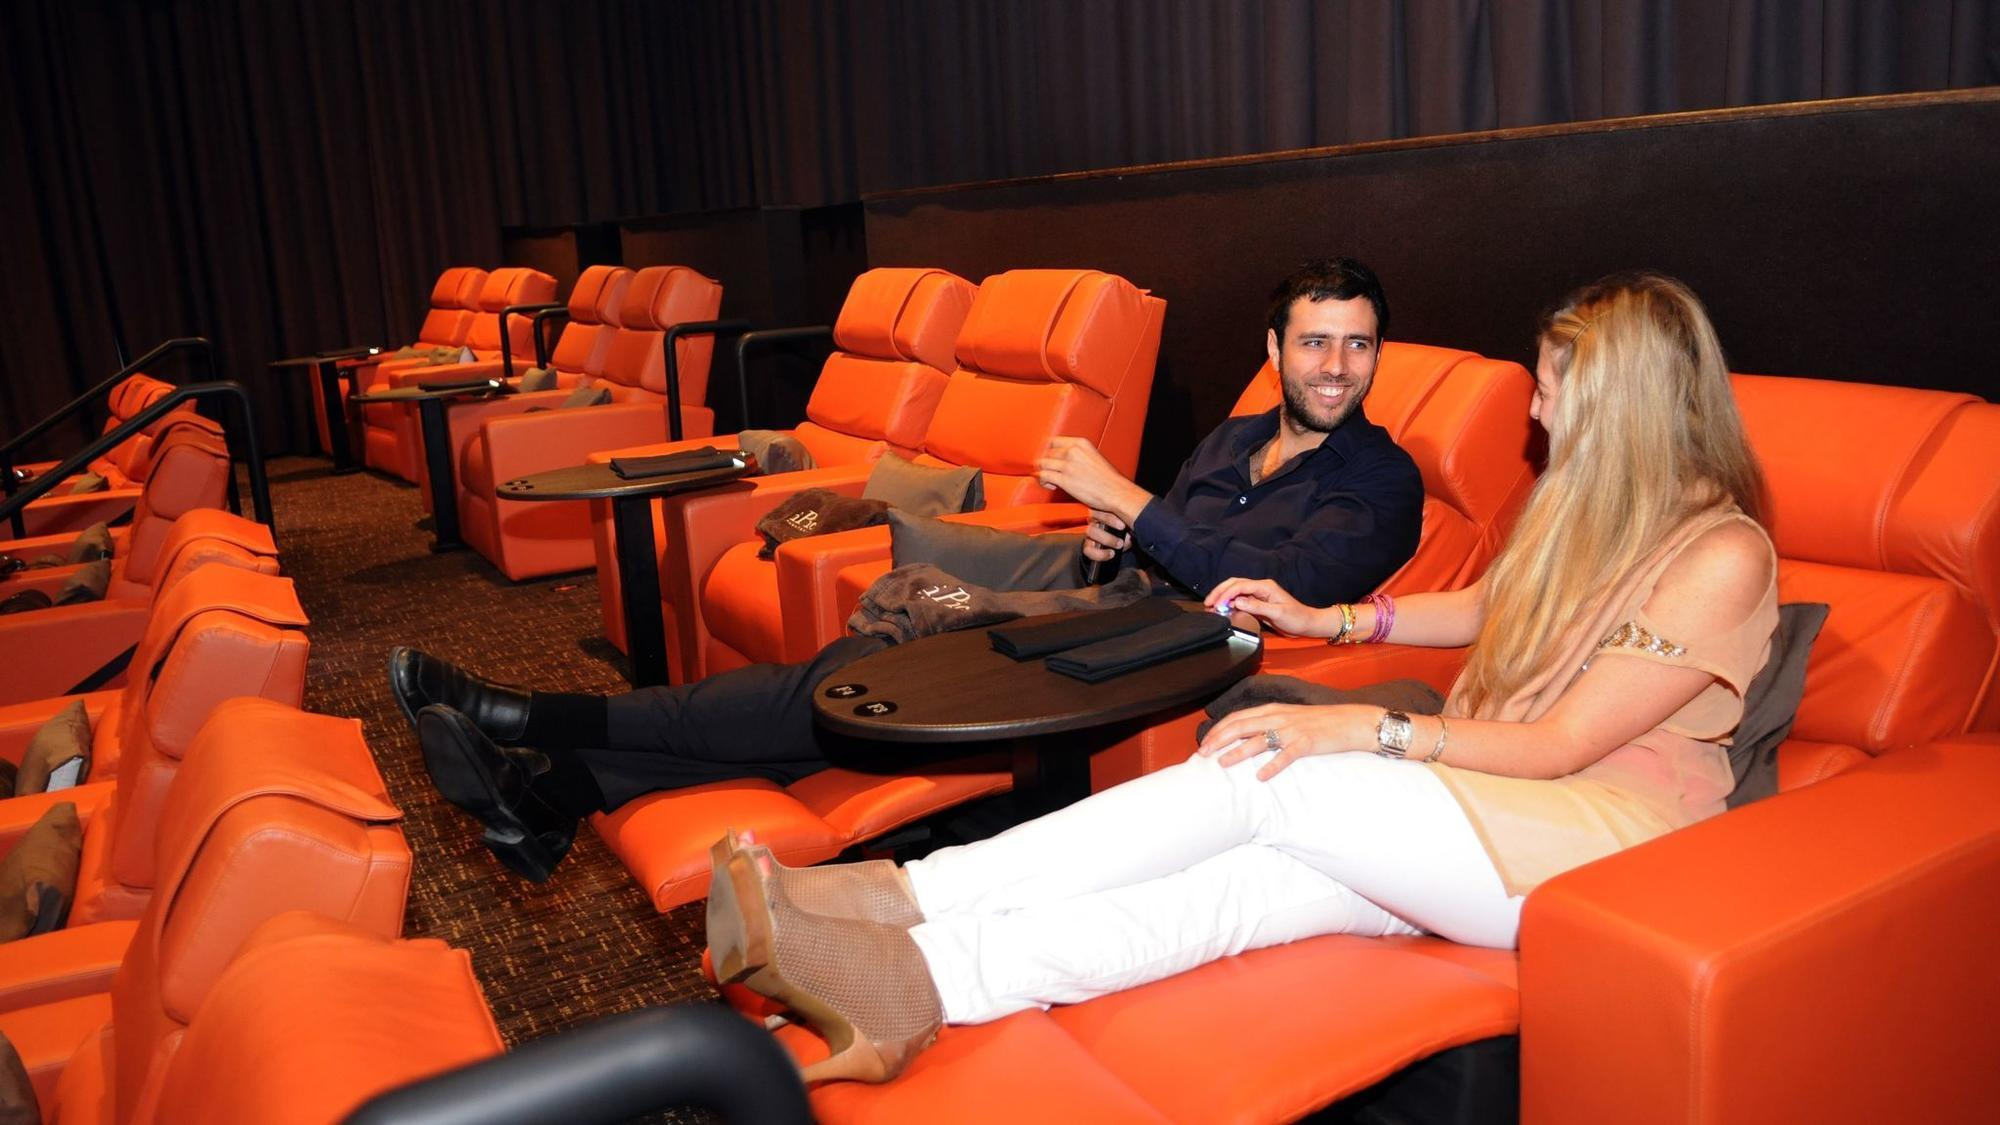 iPic movie theater coming to downtown Fort Lauderdale